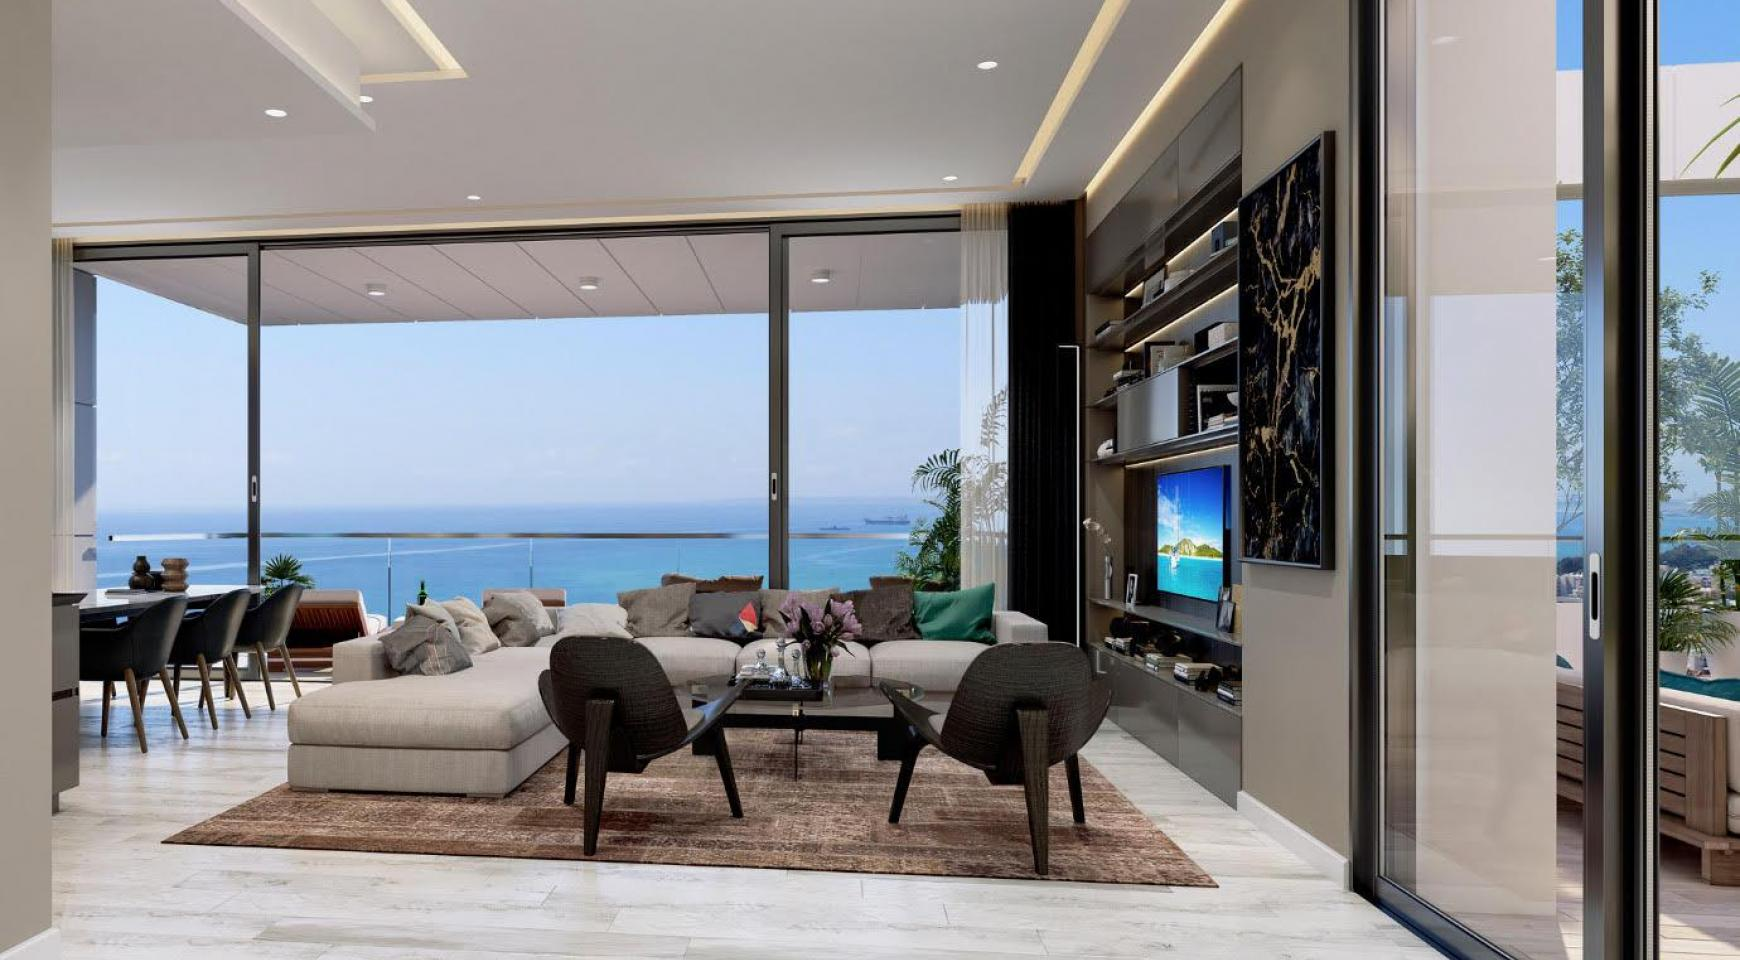 Contemporary 2 Bedroom Apartment with Sea Views in a Luxury Complex - 3